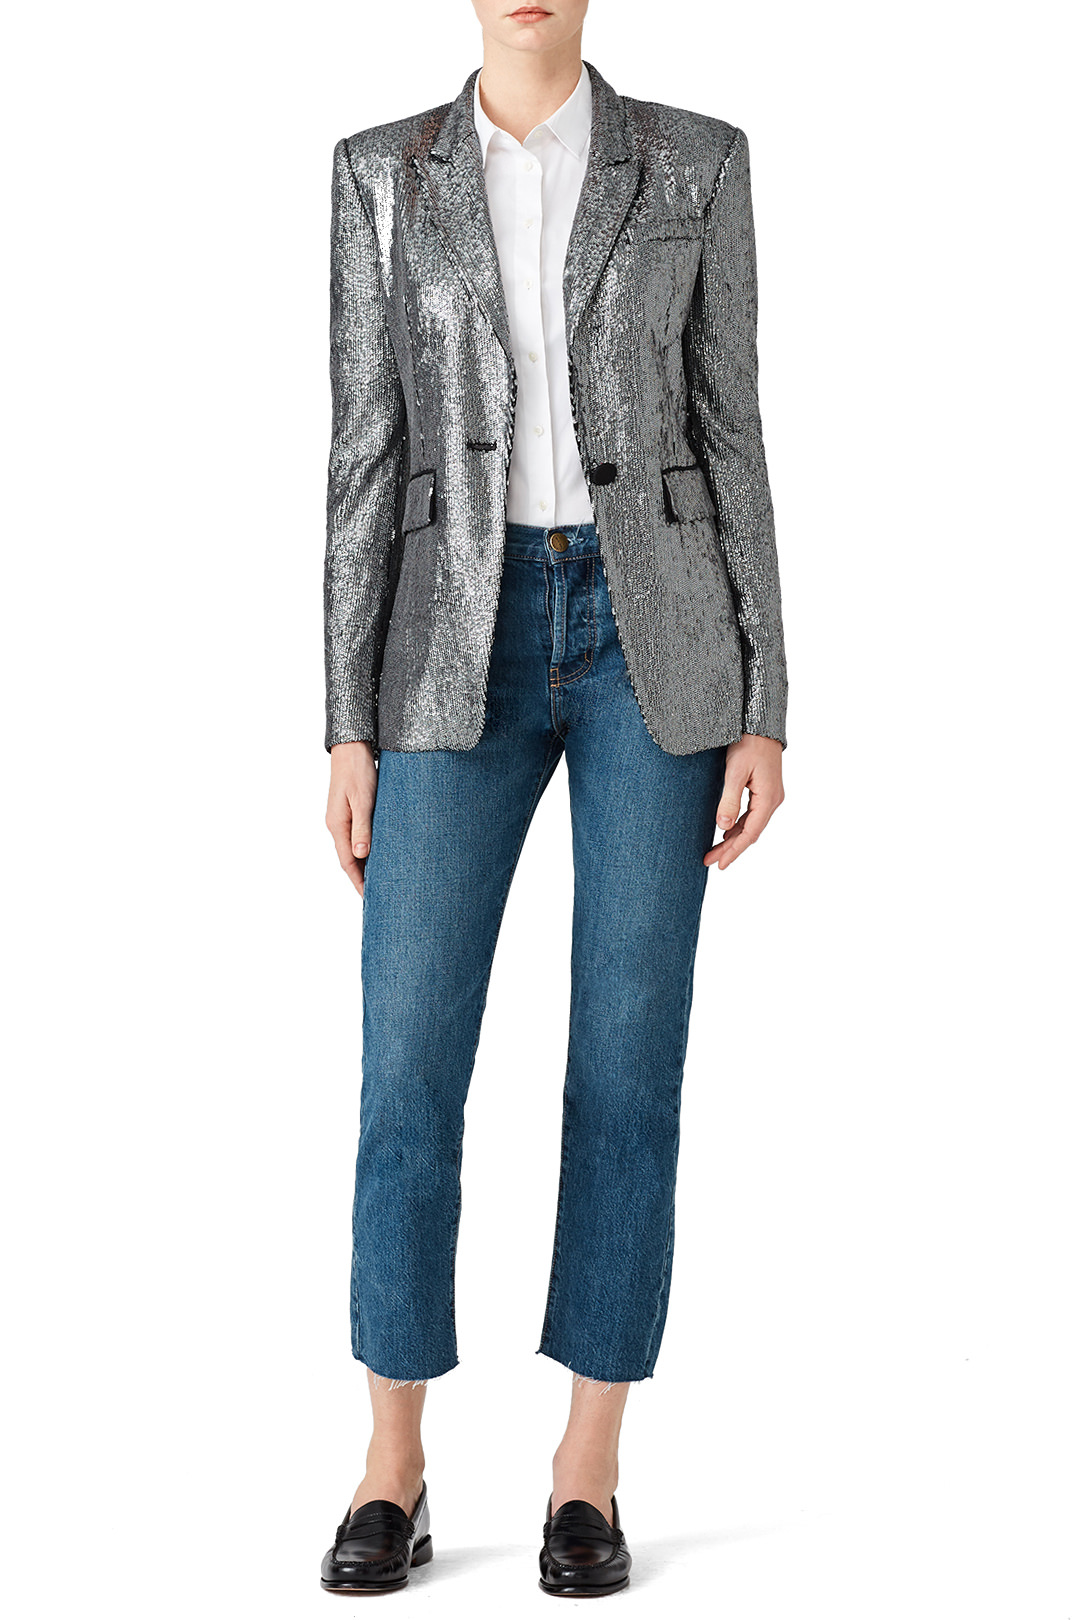 Rachel Zoe Pewter Rixey Blazer - Oh… you wouldn't wear a sequin blazer to Gma's house? Weird…